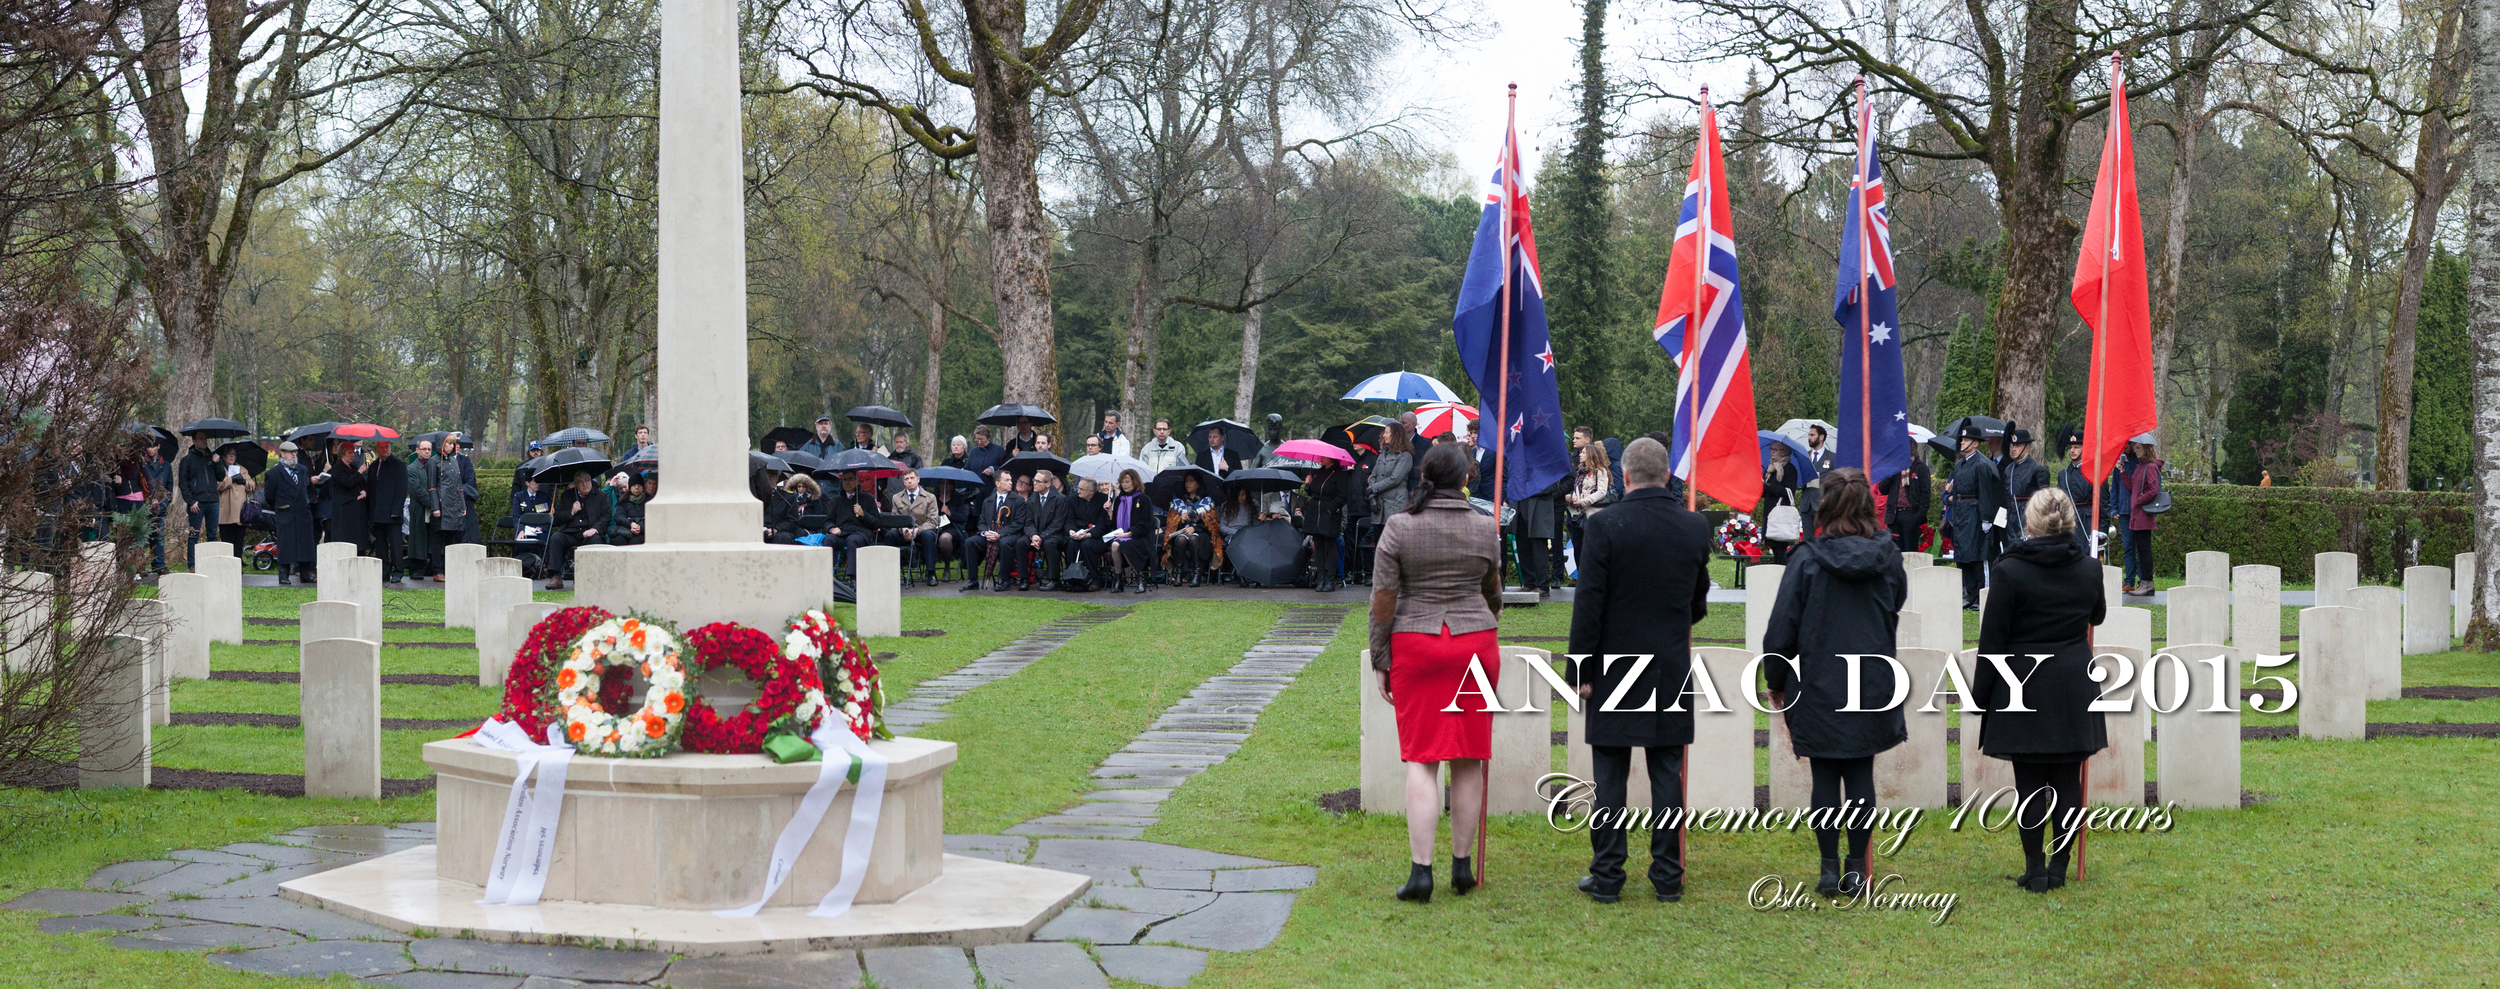 Citizens of New Zealand, Australia, Turkey and Norway gathered in Vestre Gravlund, Oslo to commemorate the 100th anniversary of ANZAC Day.